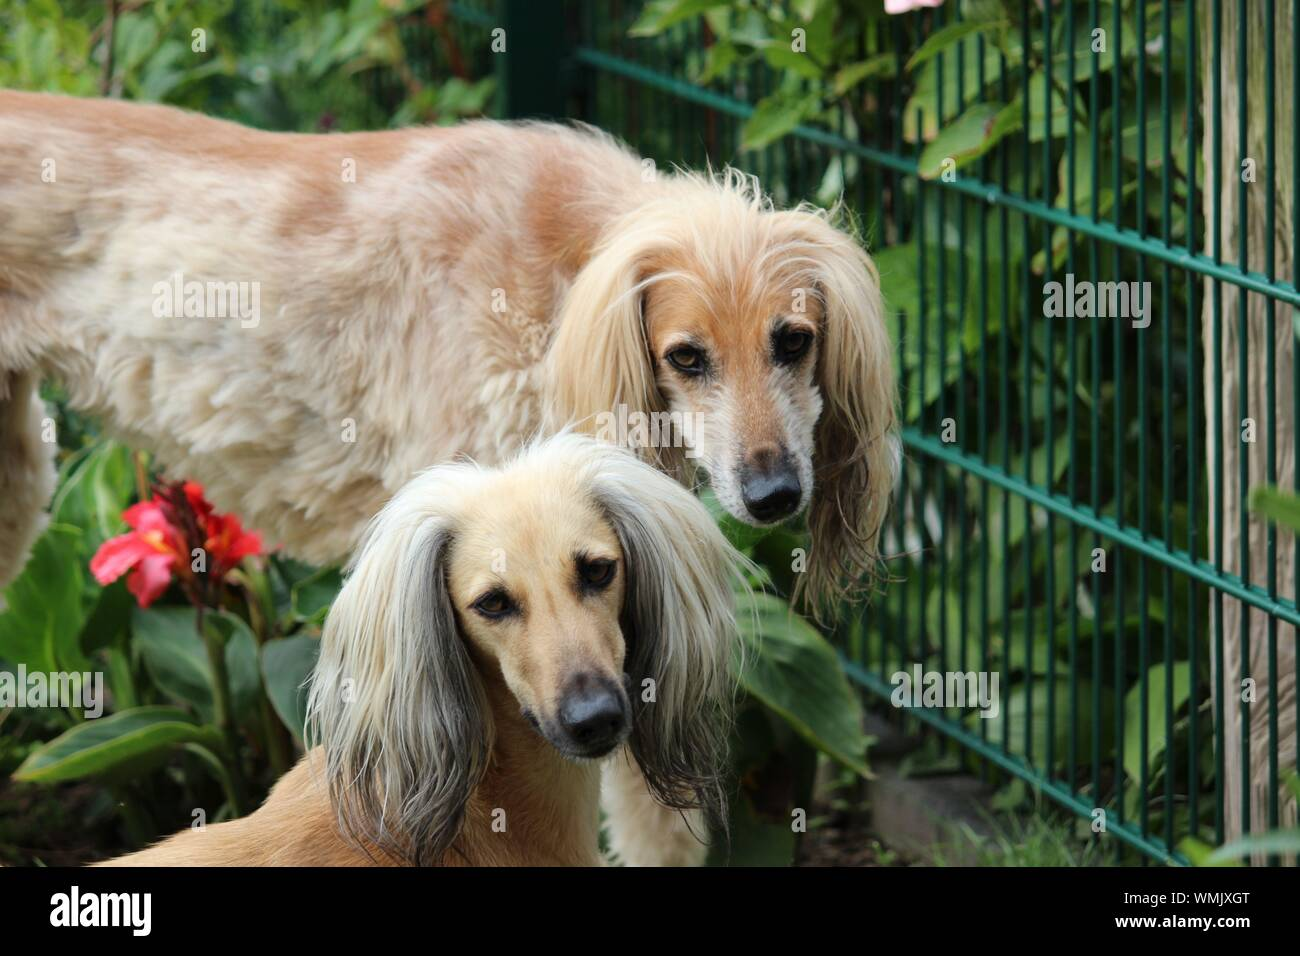 Portrait Of Sighthounds In Garden Stock Photo